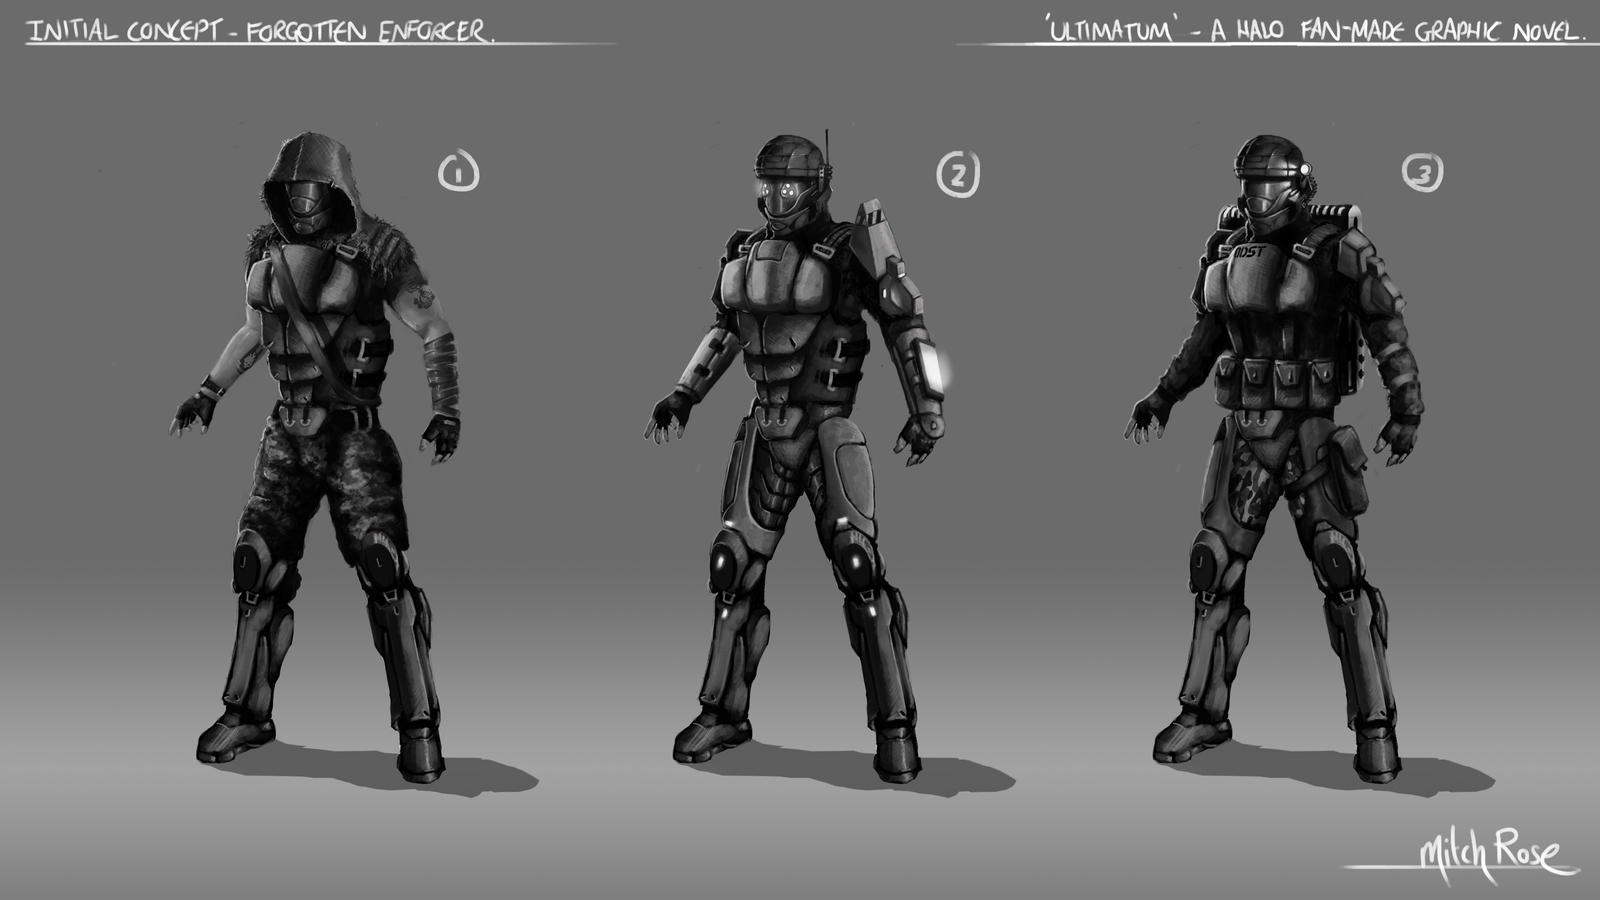 Concept - Forgotten Enforcer by GhilliedNinja